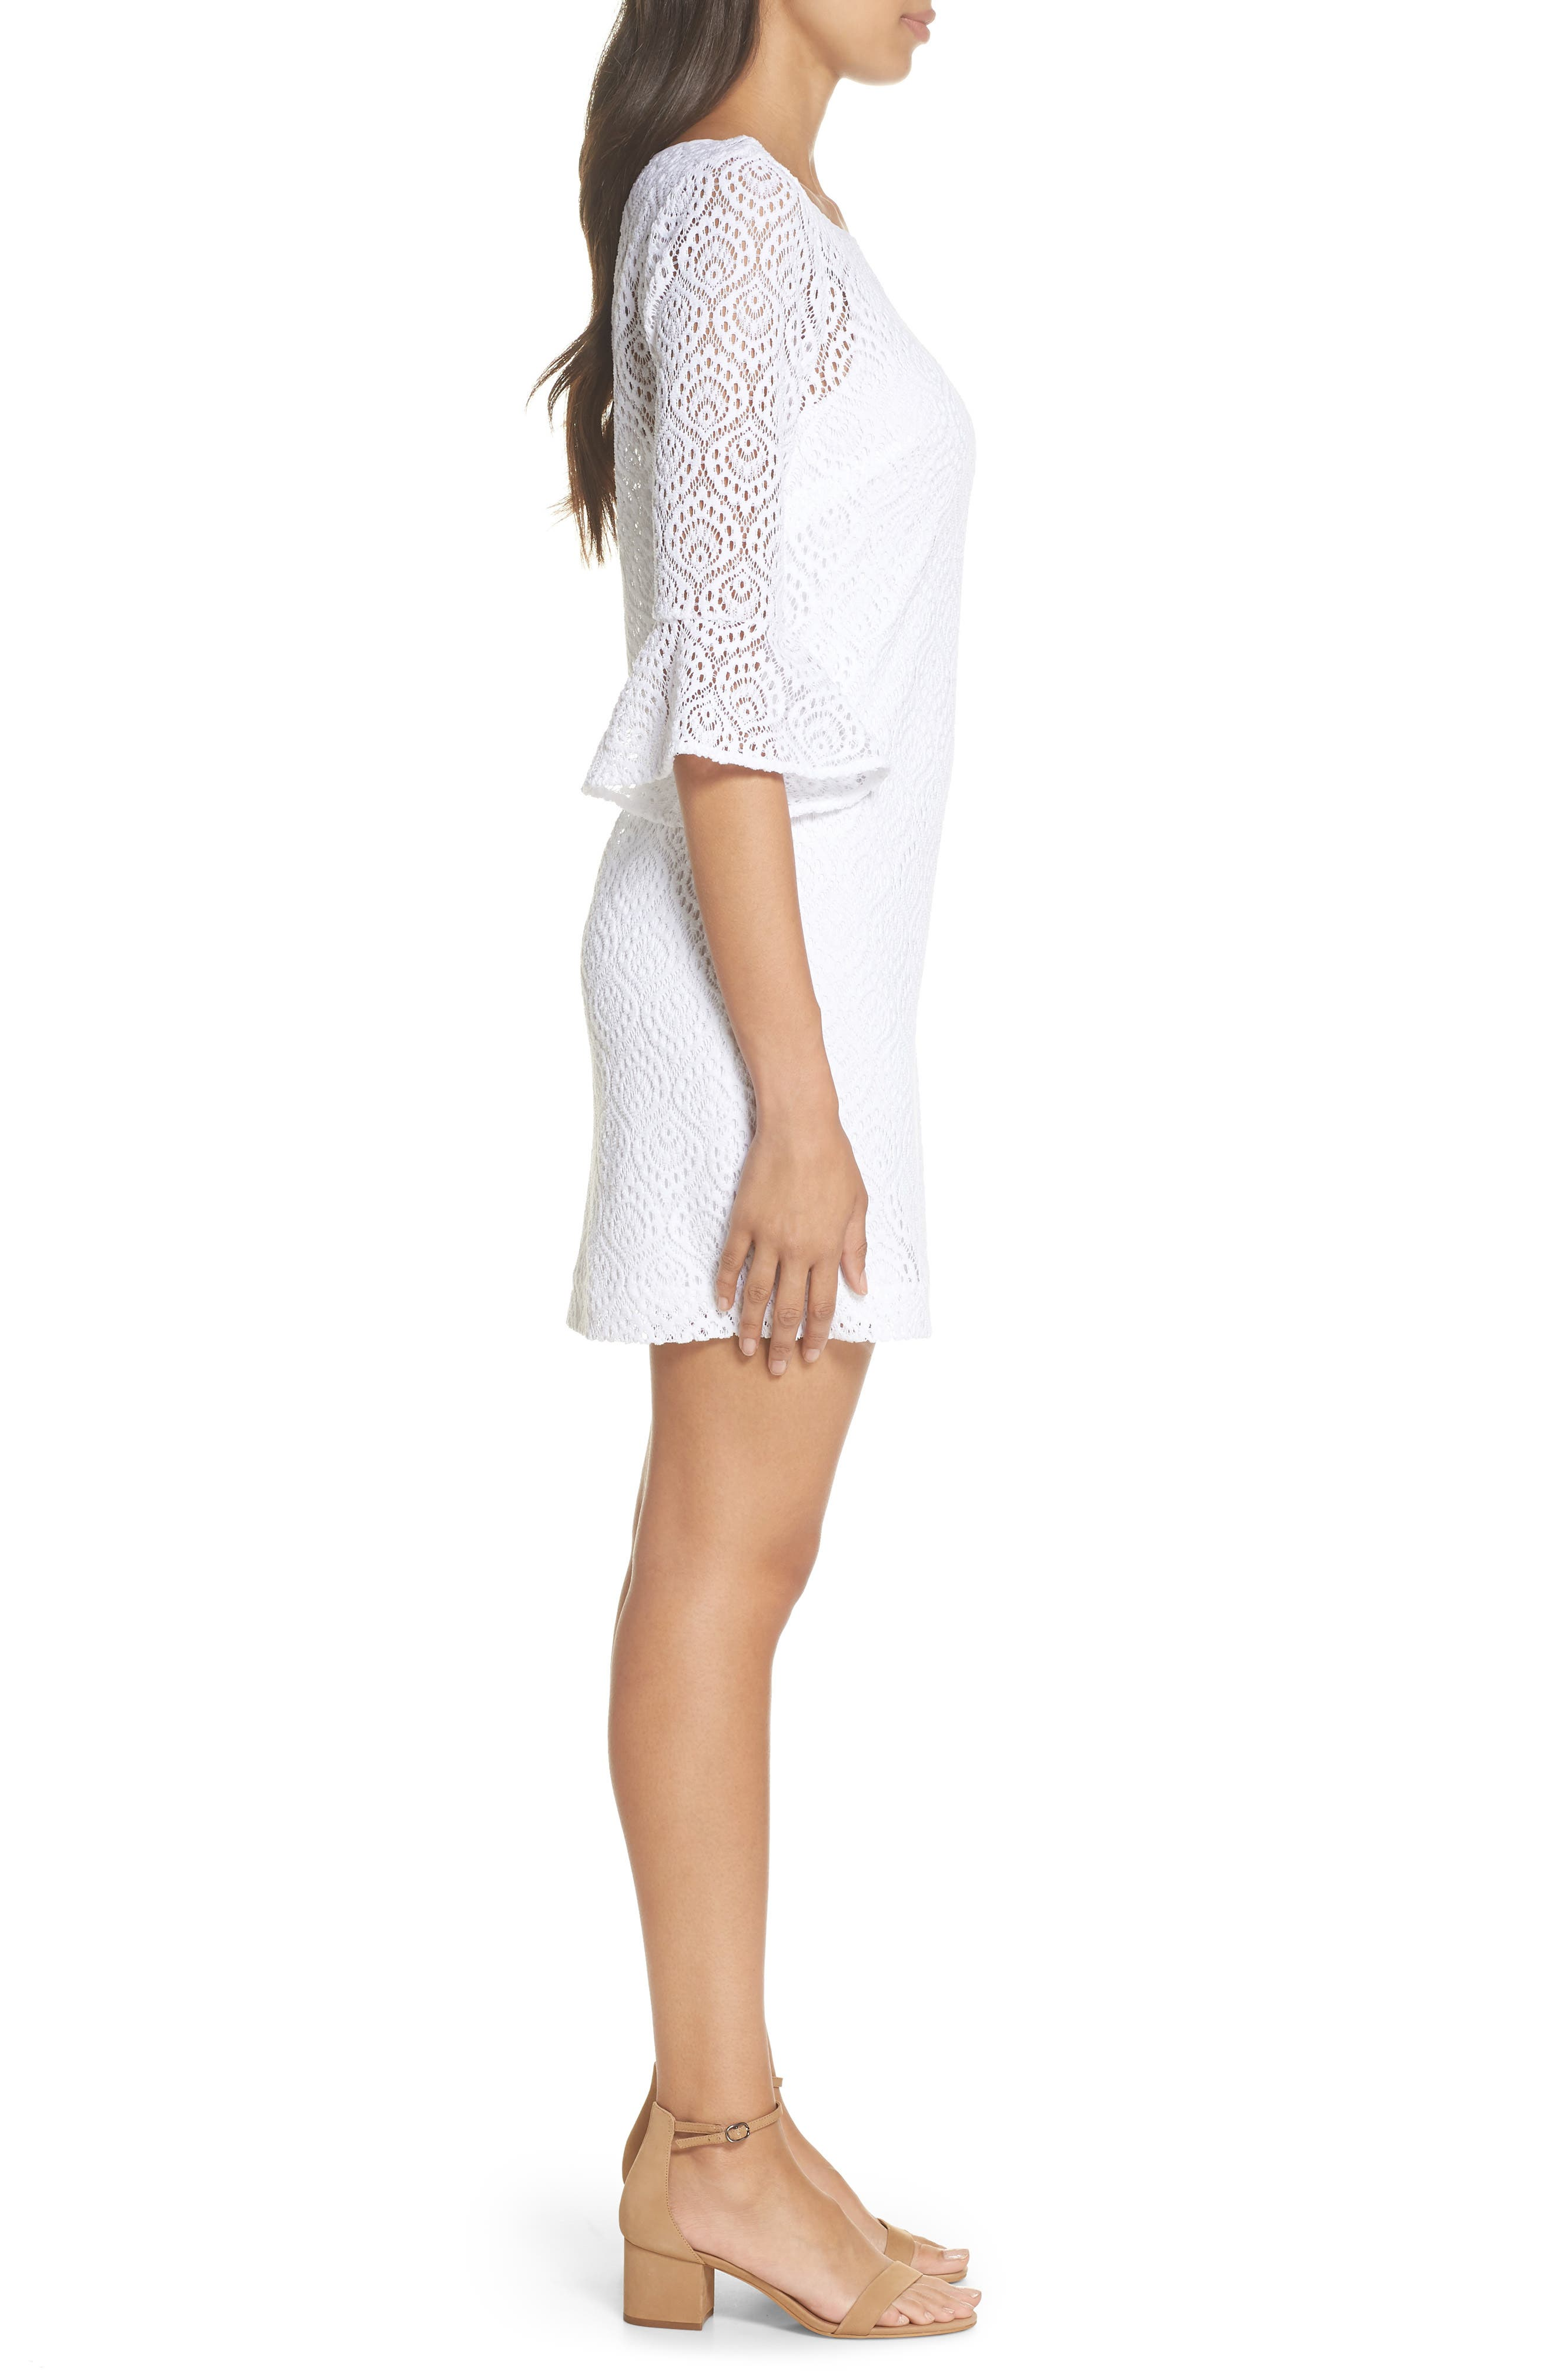 Fontaine Lace Minidress,                             Alternate thumbnail 3, color,                             Resort White Gypsea Lace